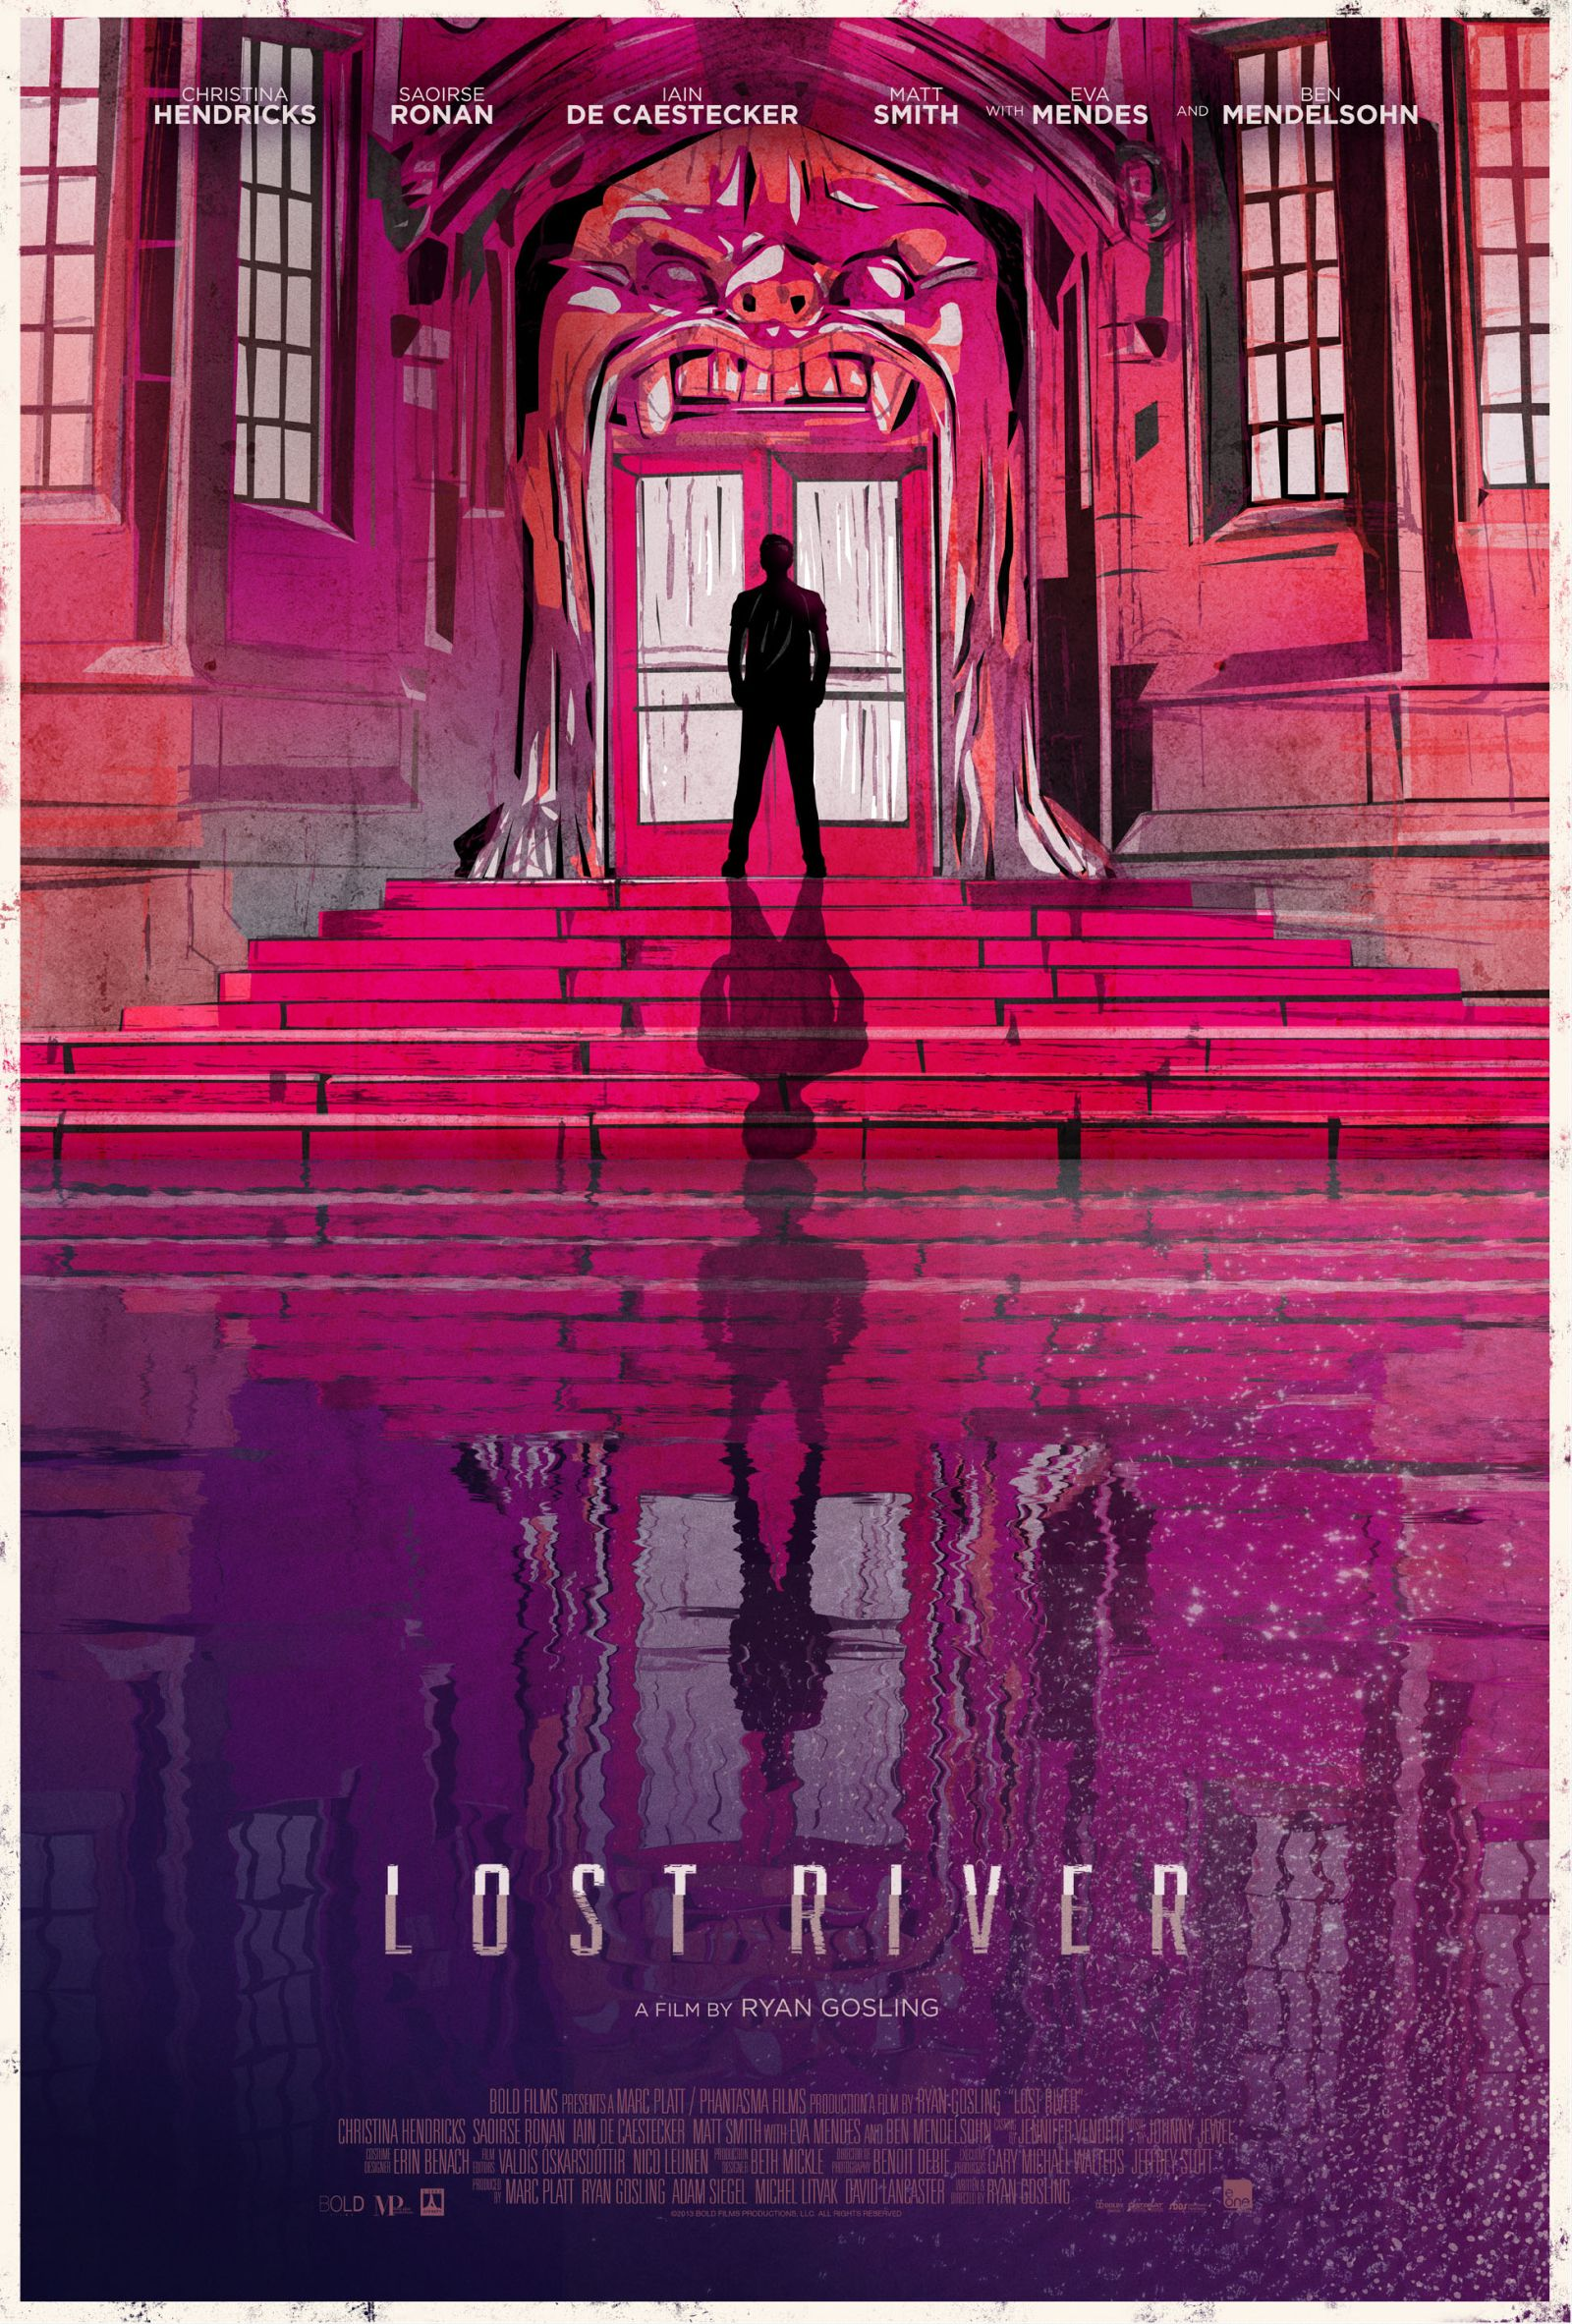 Lost River one of the best visual aesthetic movies